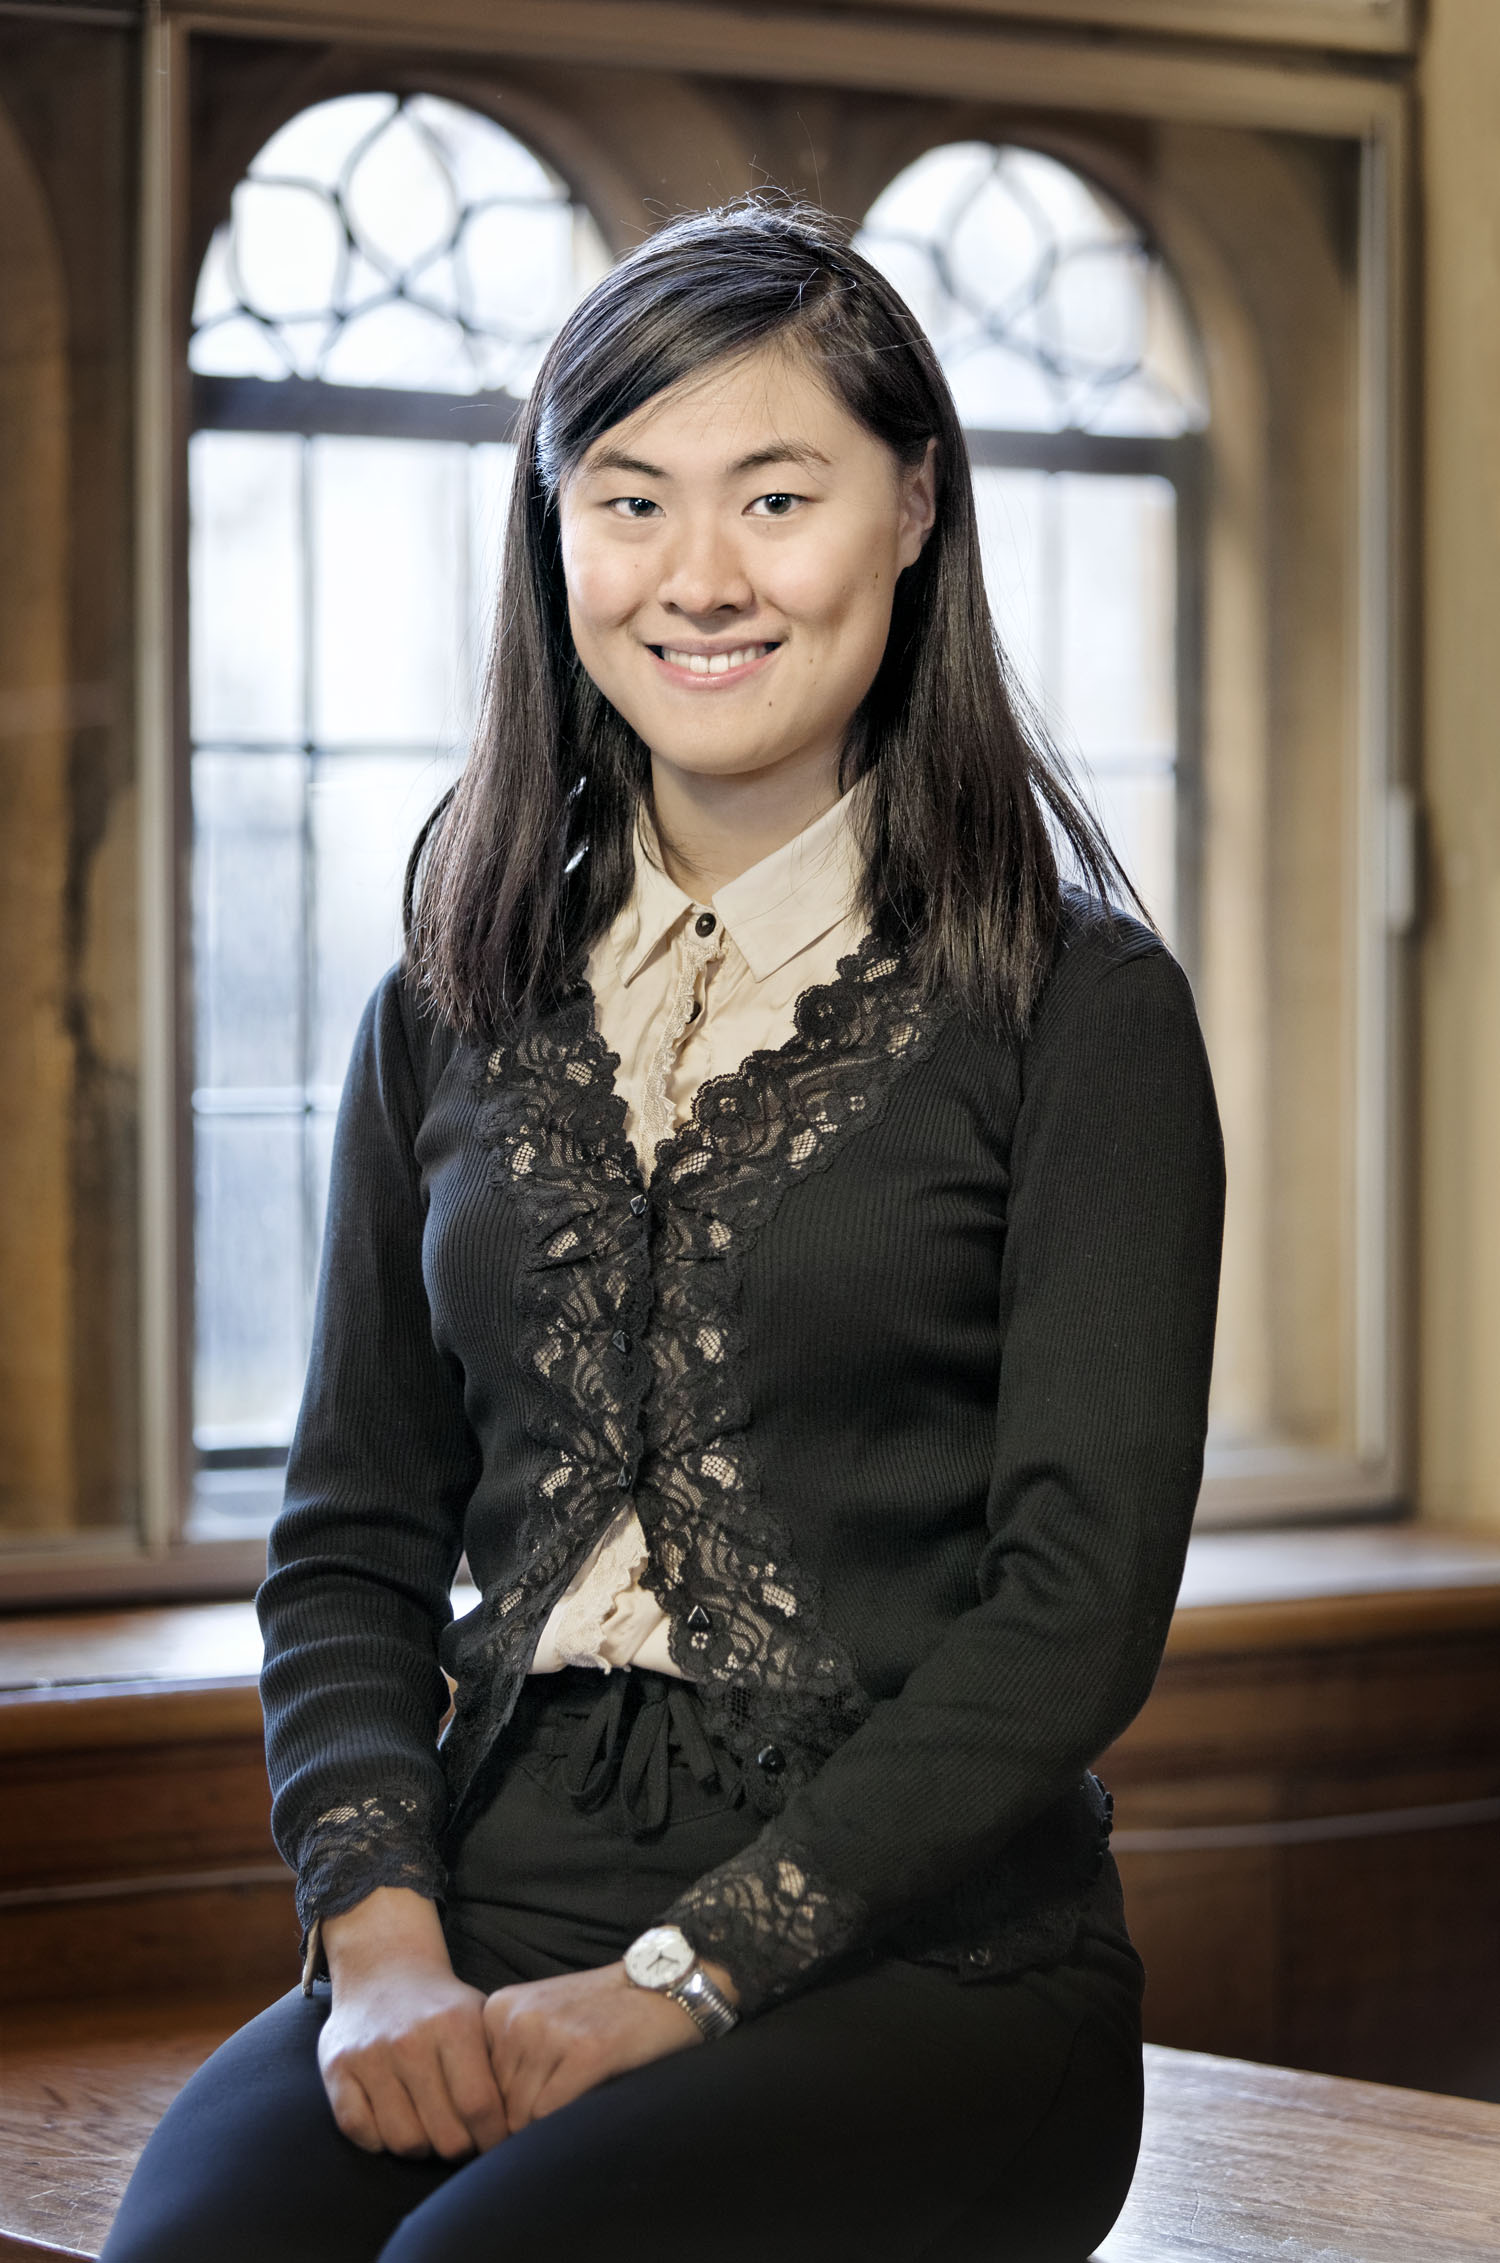 Kai Lin Sun at Merton College, University of Oxford